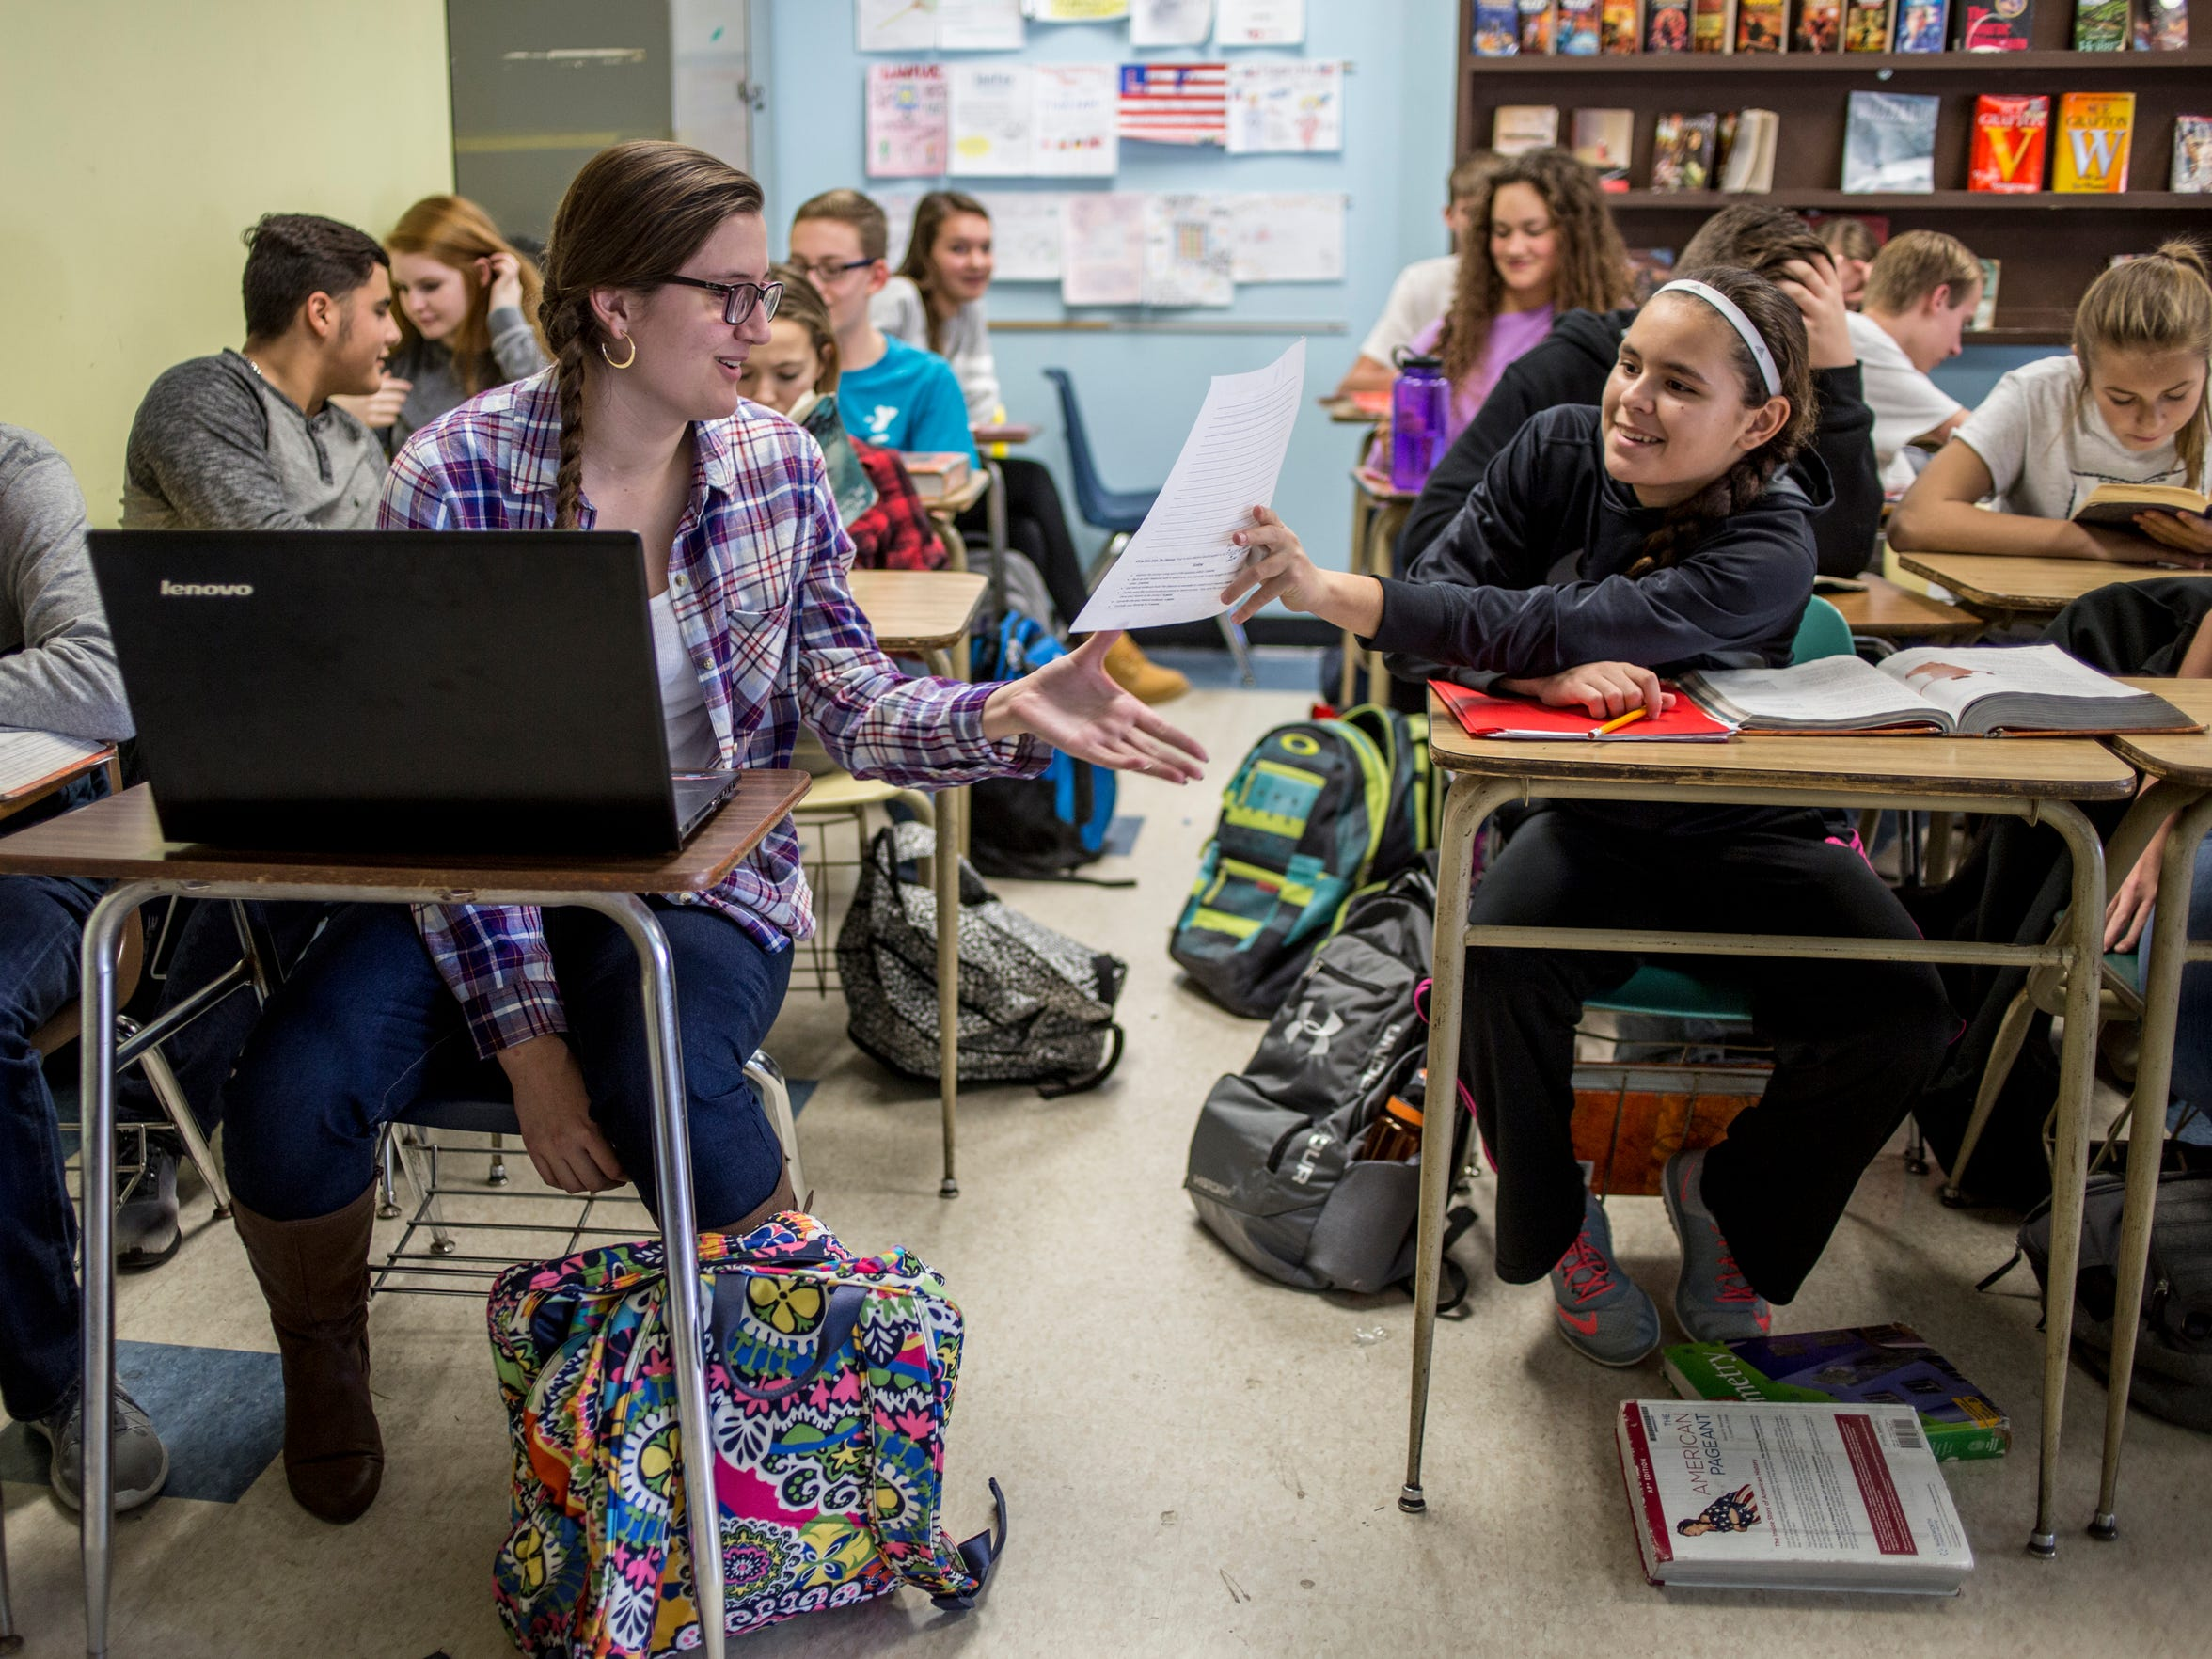 Gabrielle Allers, 14, works with Lucy Forlastro, 14,